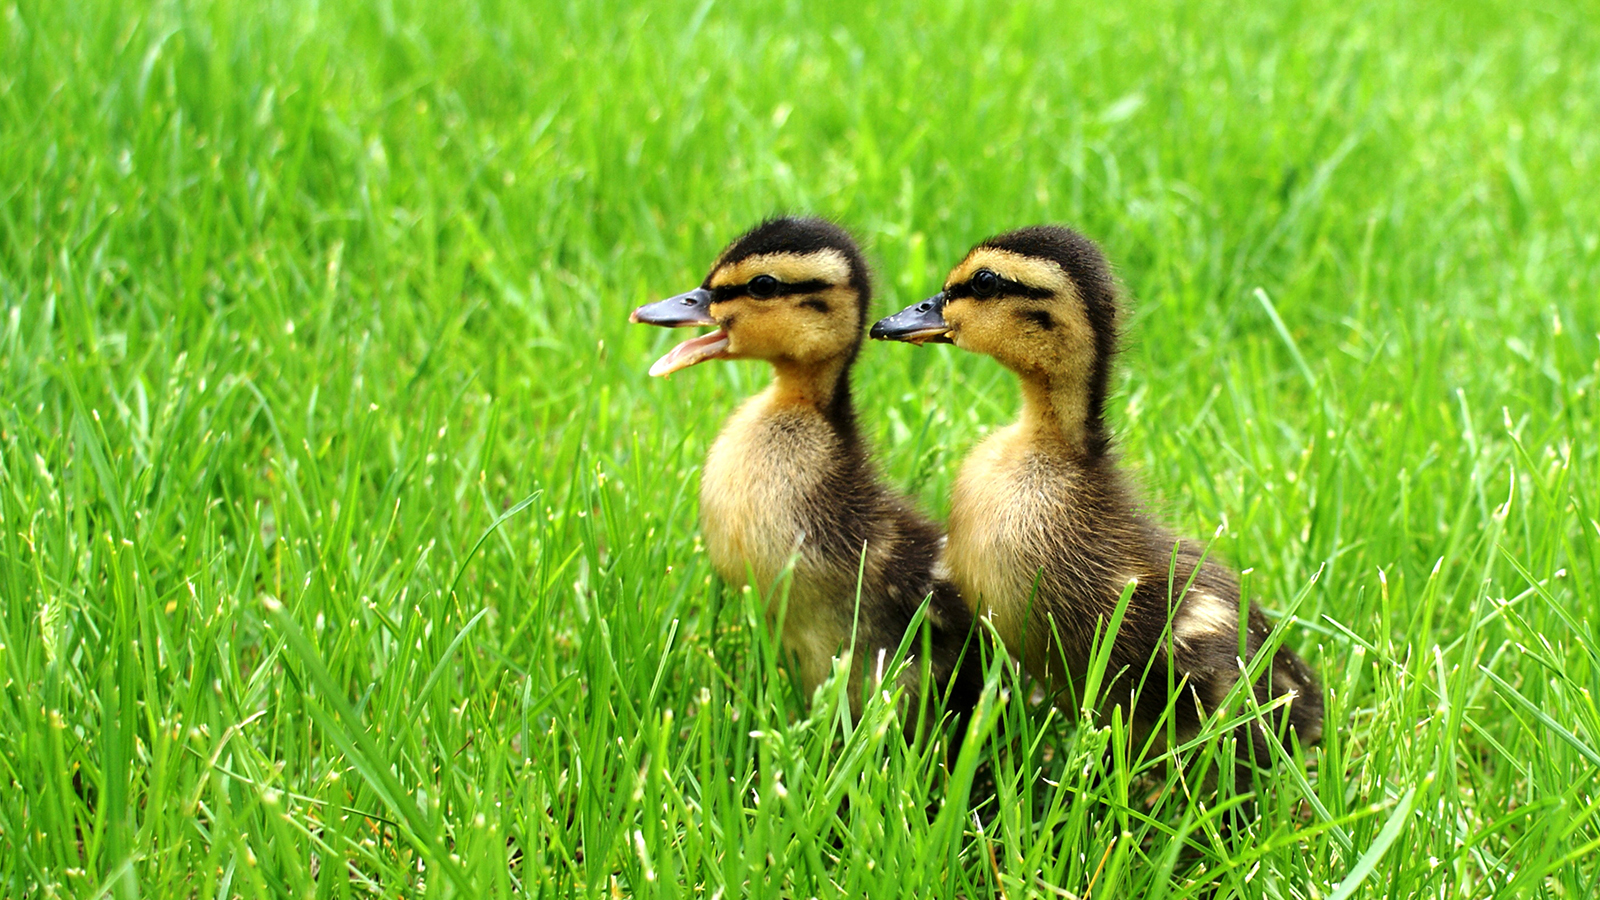 Amazing Ducks Pictures & Backgrounds